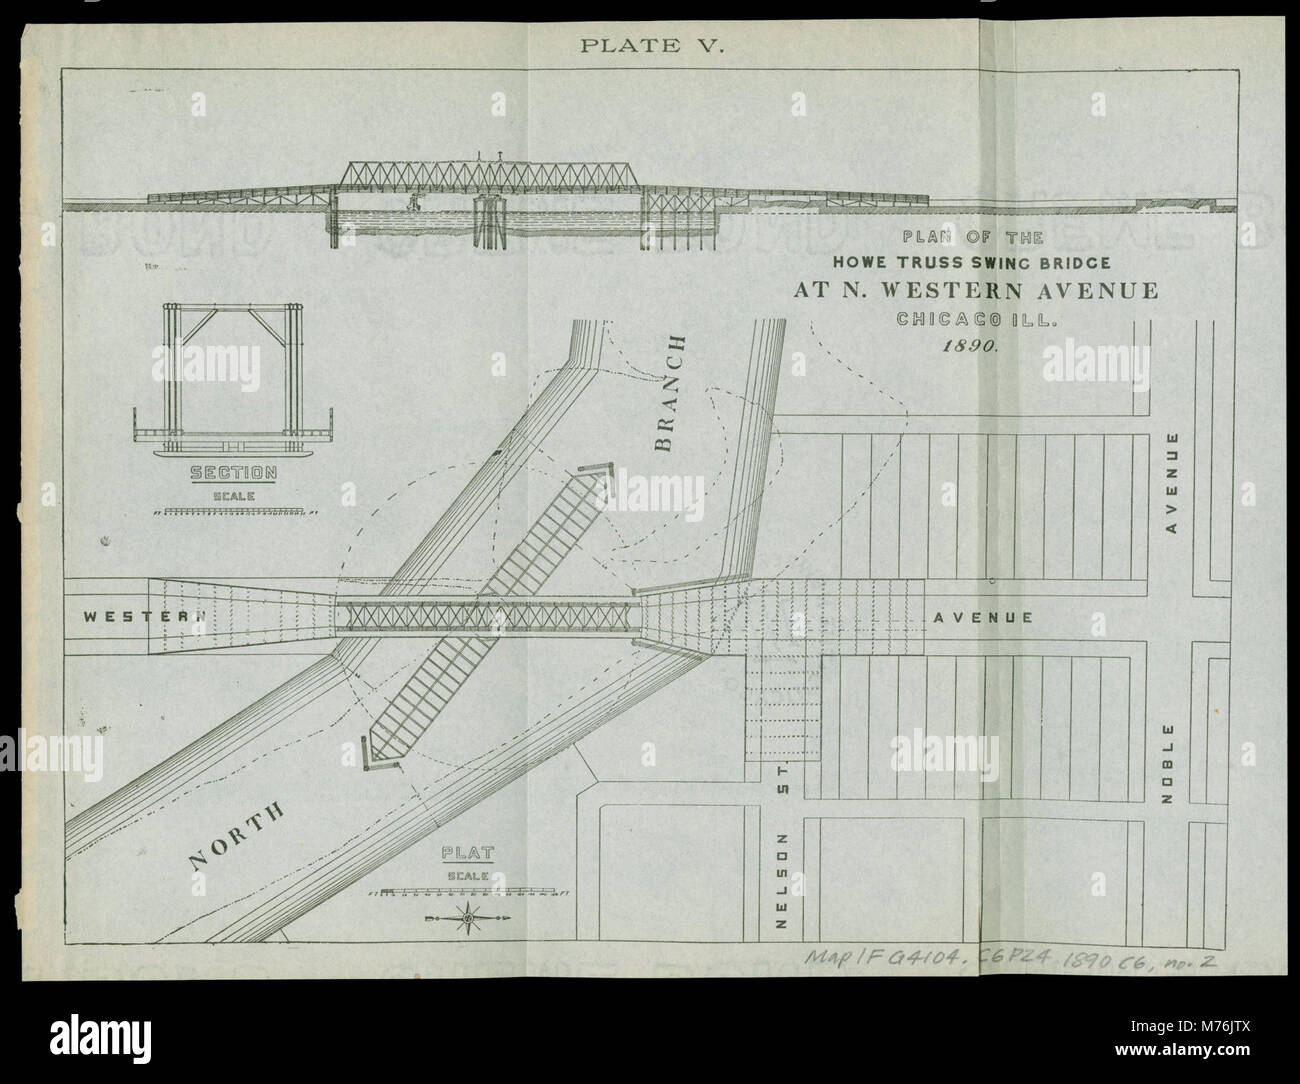 Plan Of The Howe Truss Swing Bridge At N Western Avenue Chicago Diagram Through Ill 1890 Nby 8083